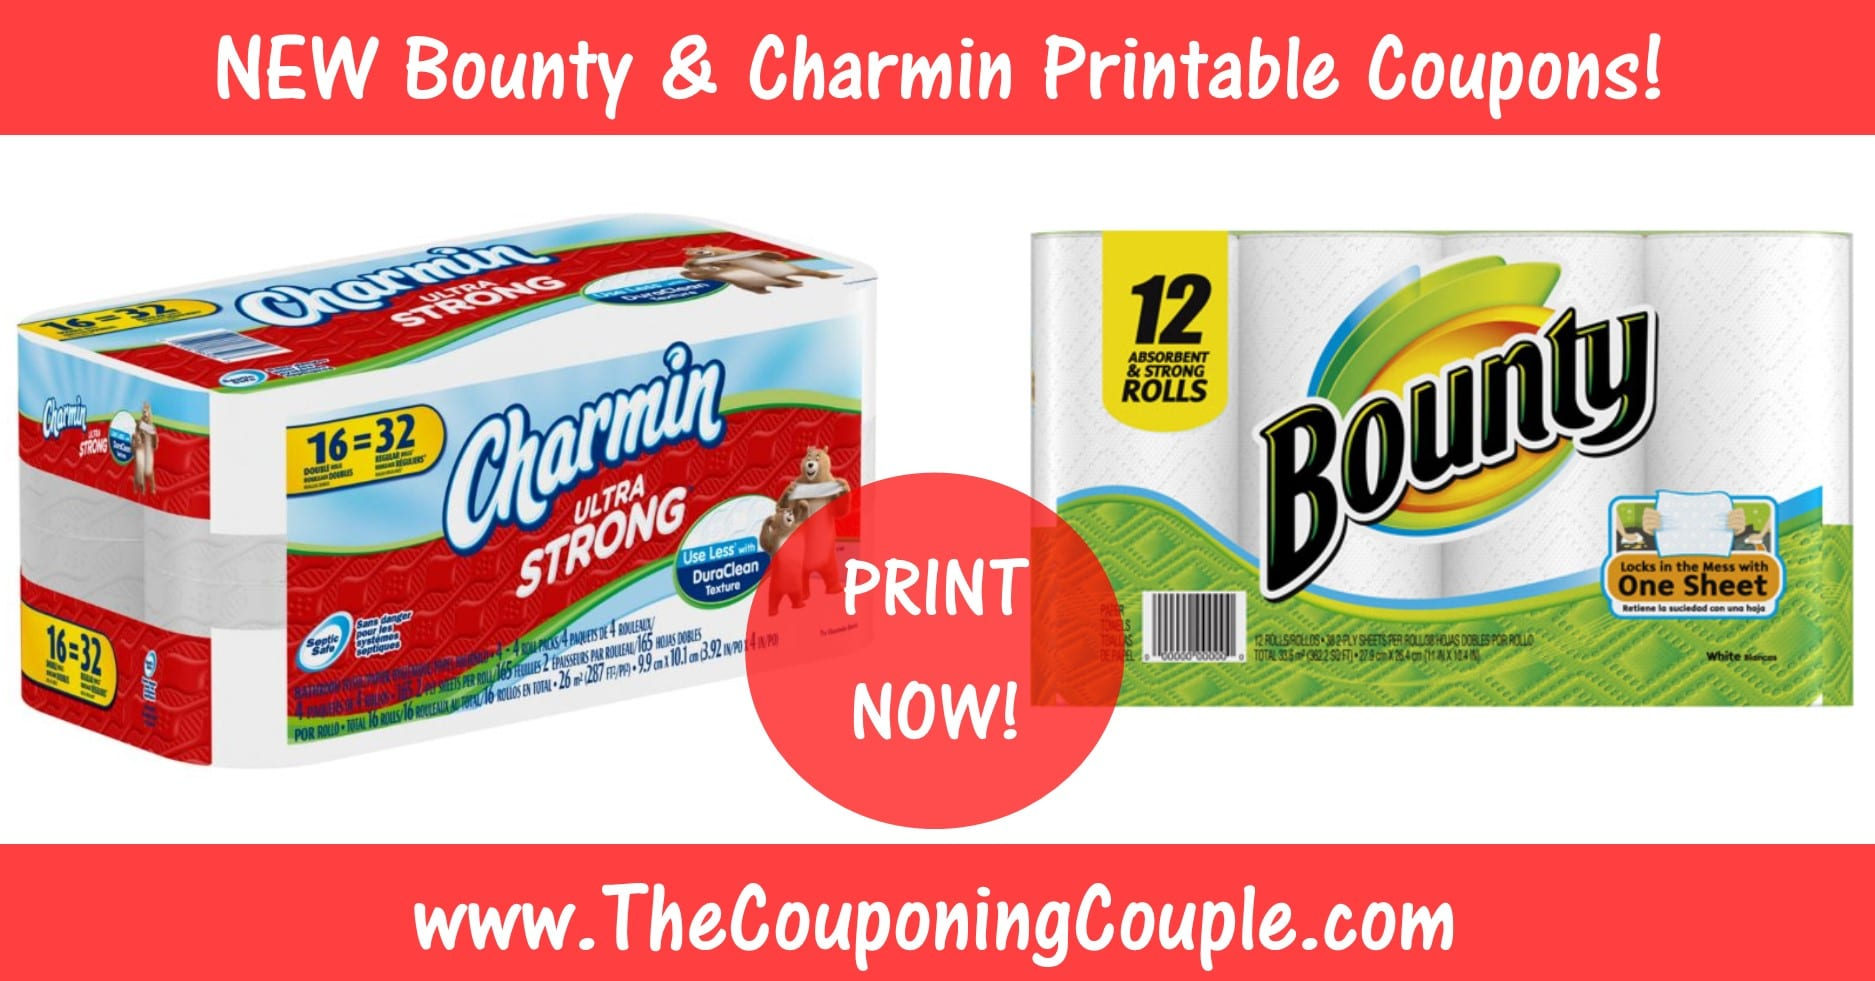 Bounty Paper Towels Printable Coupon. Jun Bounty Basic Big Rolls Only $ at Target! Posted on June 15th, by Coupon Printer bukahatene.ml, Paper and Plastic Coupons | Tags: Bounty Basic Paper Towels Printable Coupon, Bounty Paper Products Printable Coupon, Bounty Paper Towels Printable Coupon, Bounty Products Printable Coupon.